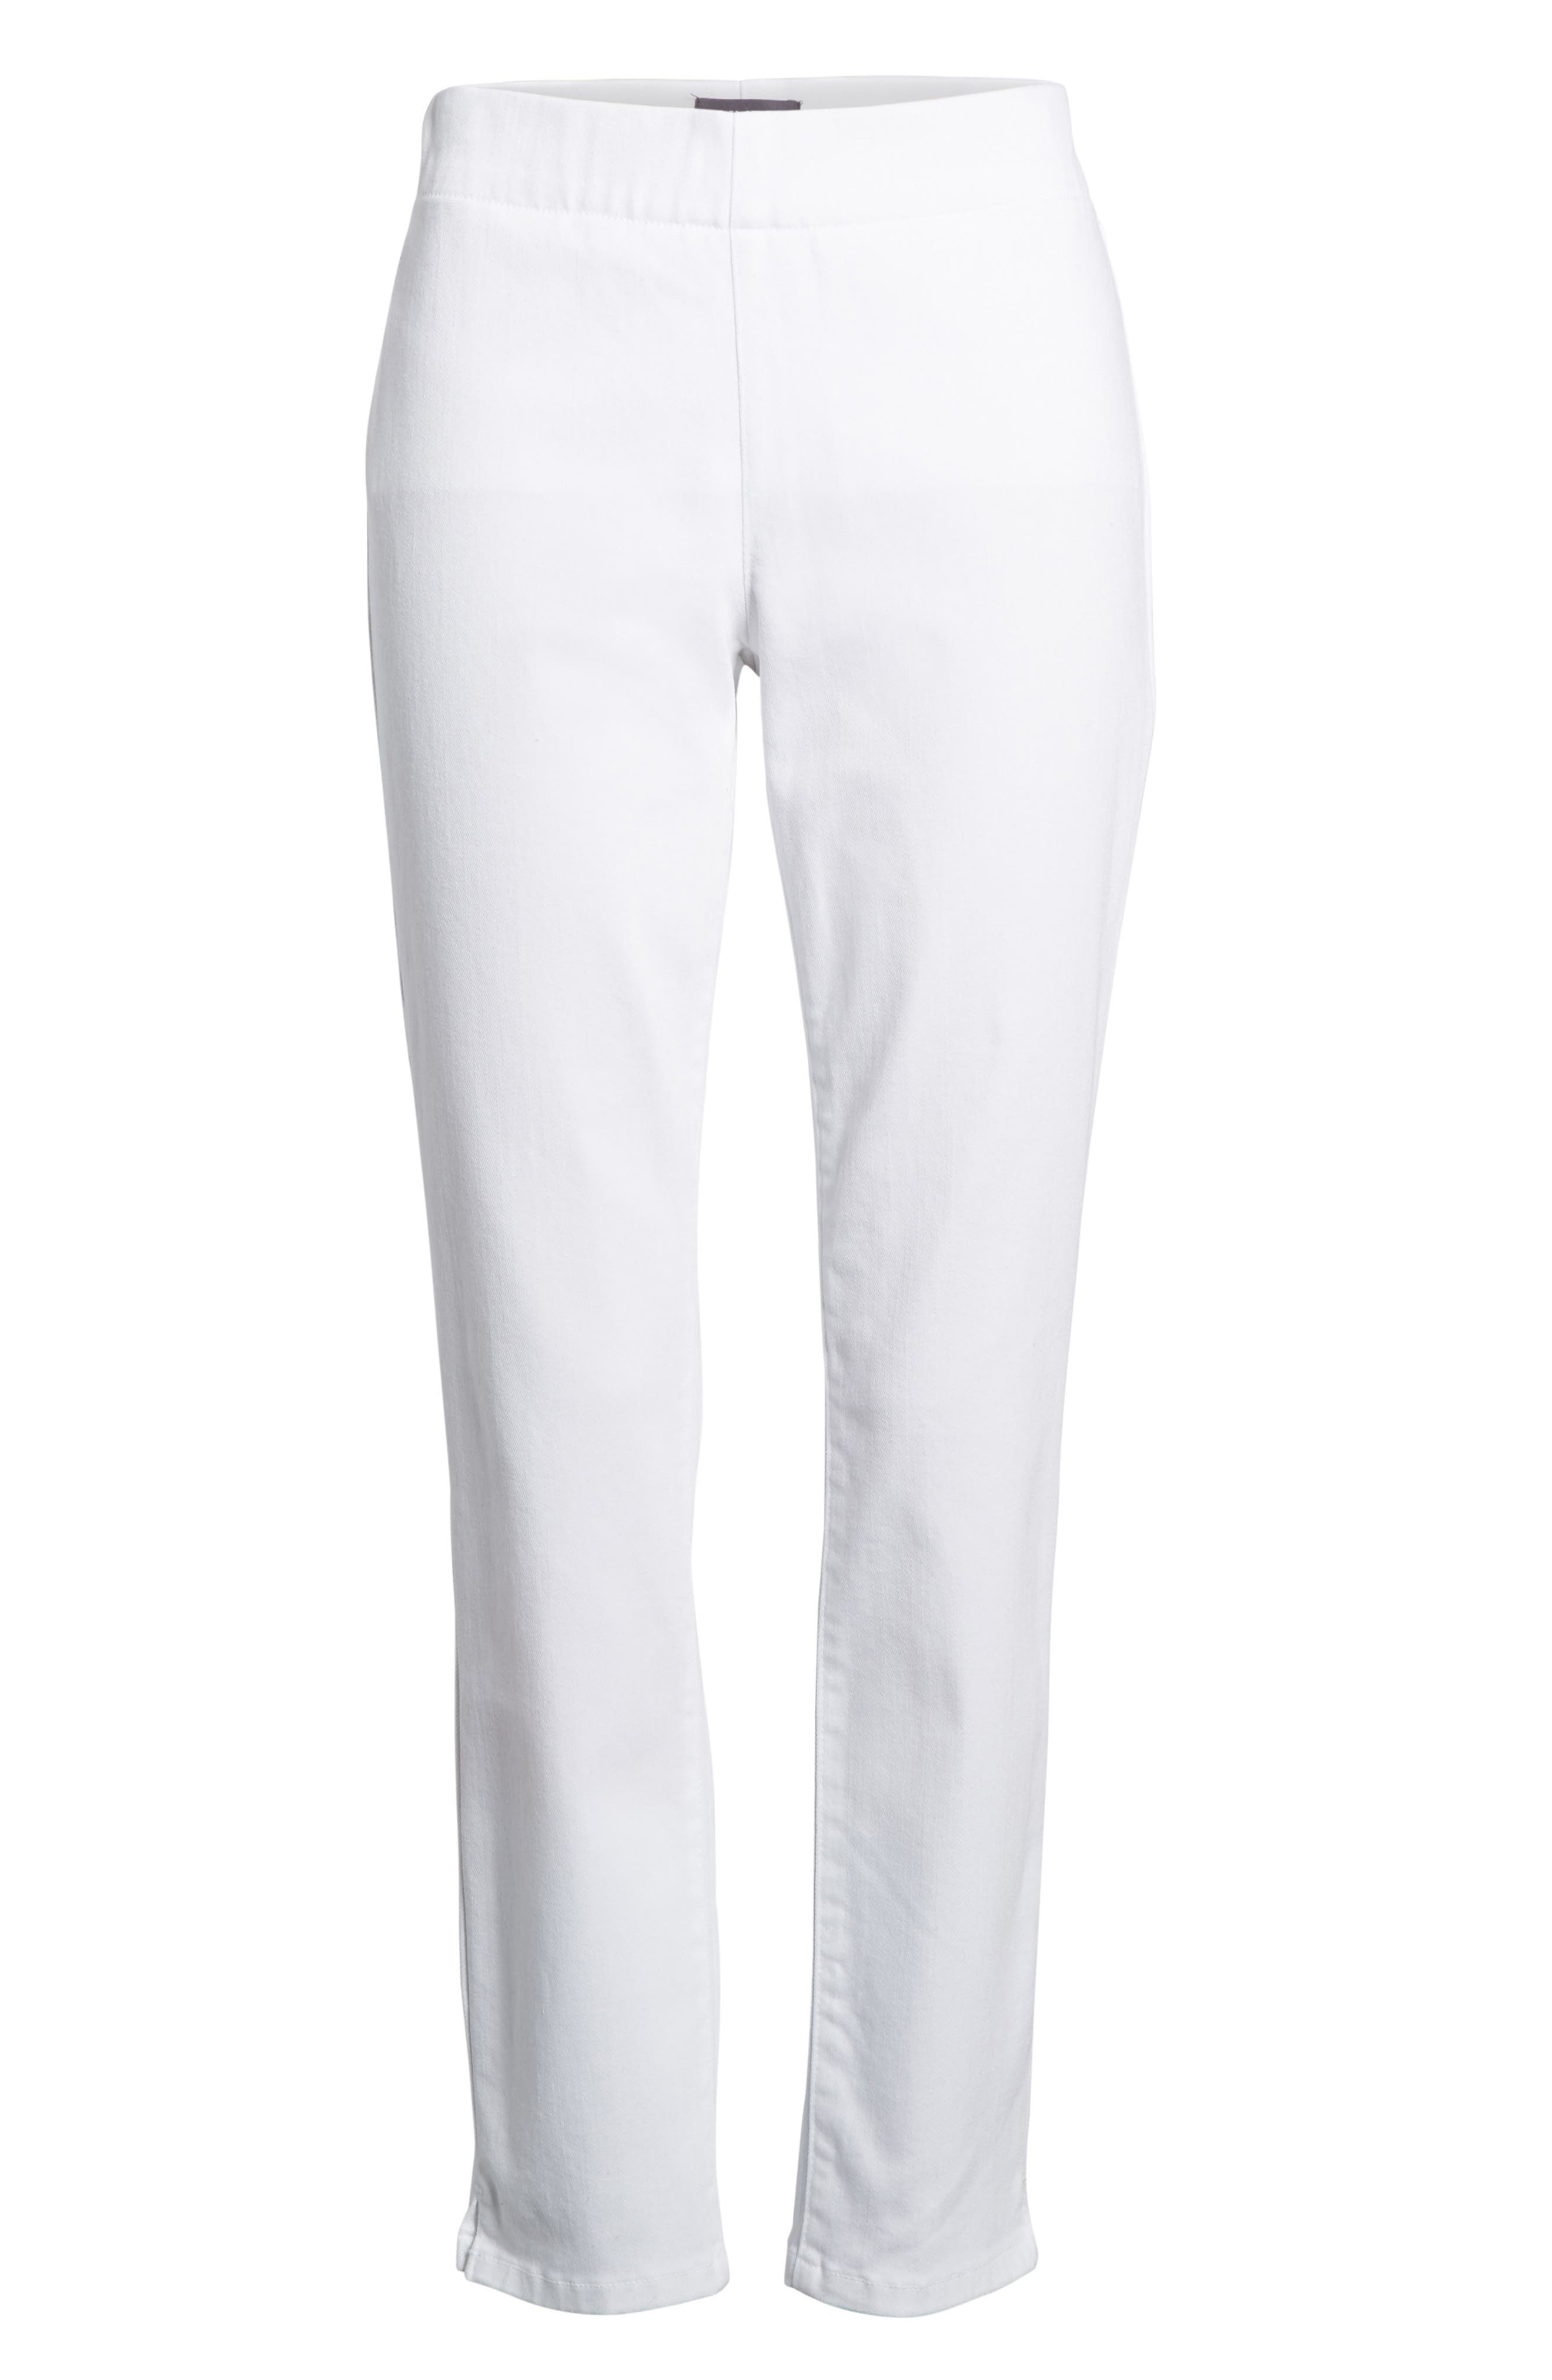 'Millie' Pull-On Stretch Ankle Skinny Jeans,                         Main,                         color, 198